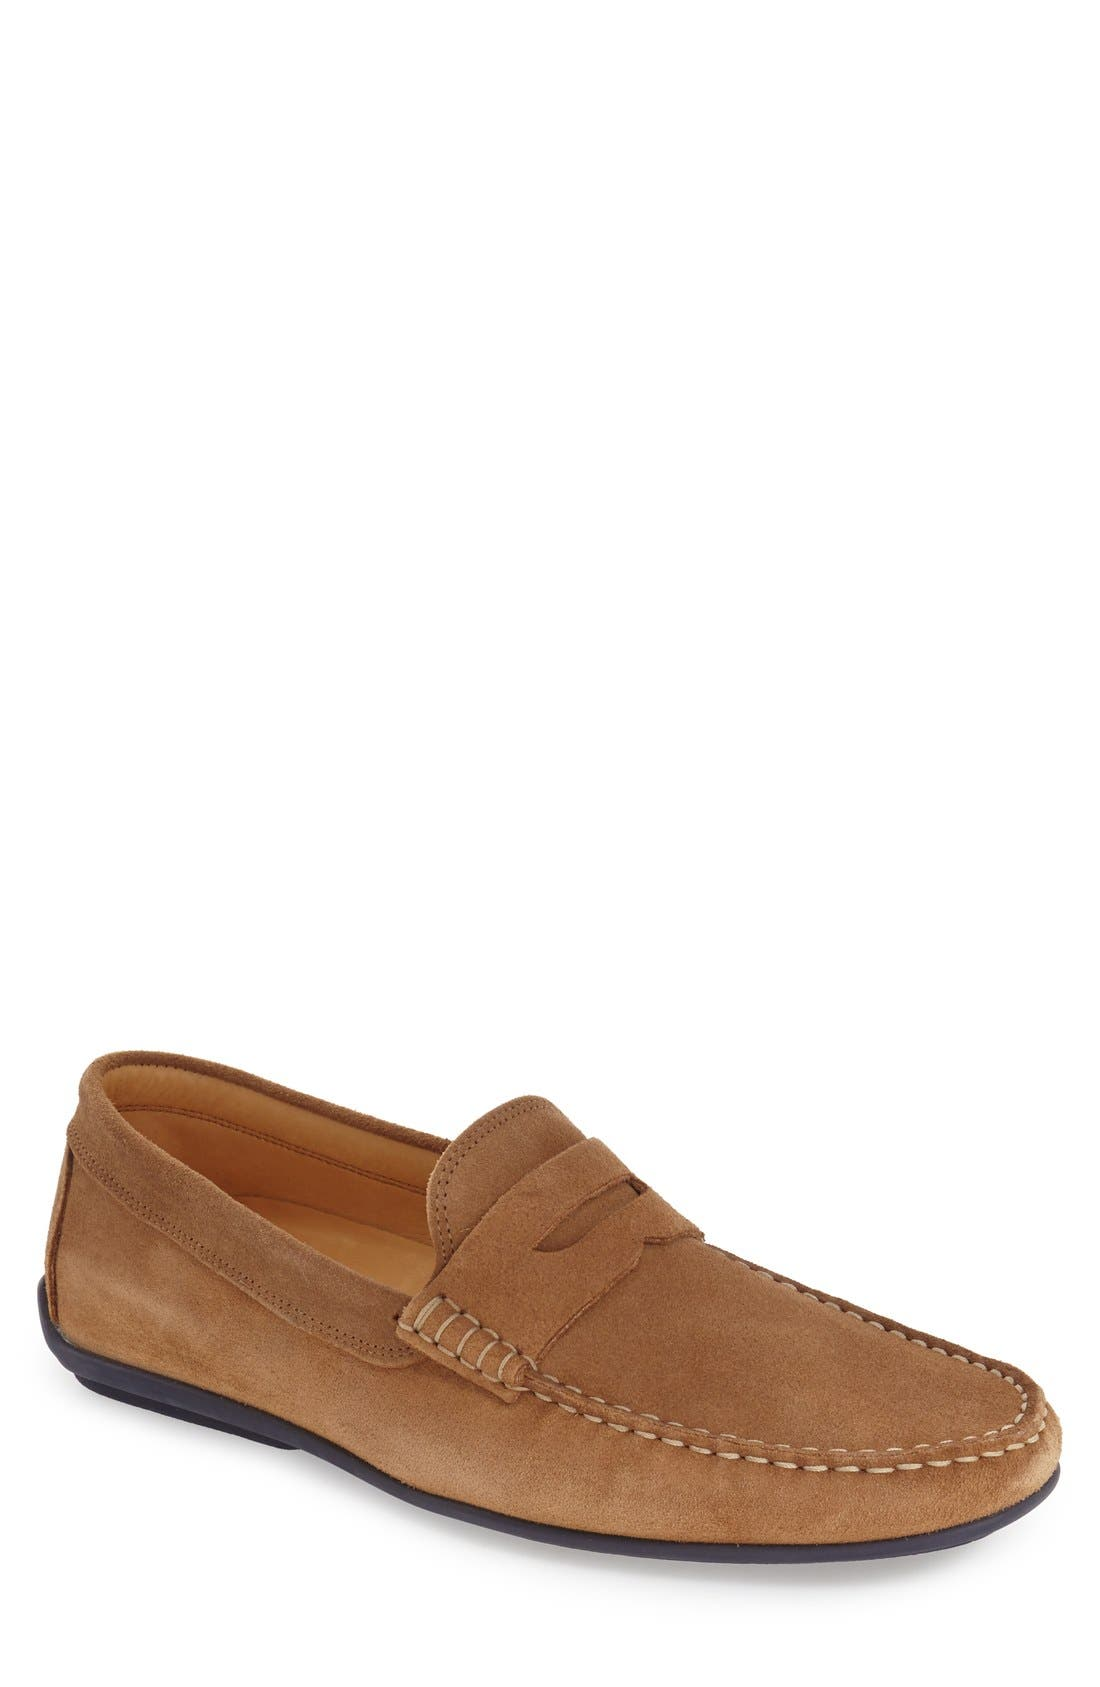 Austen Heller 'Parkers' Penny Loafer (Men)